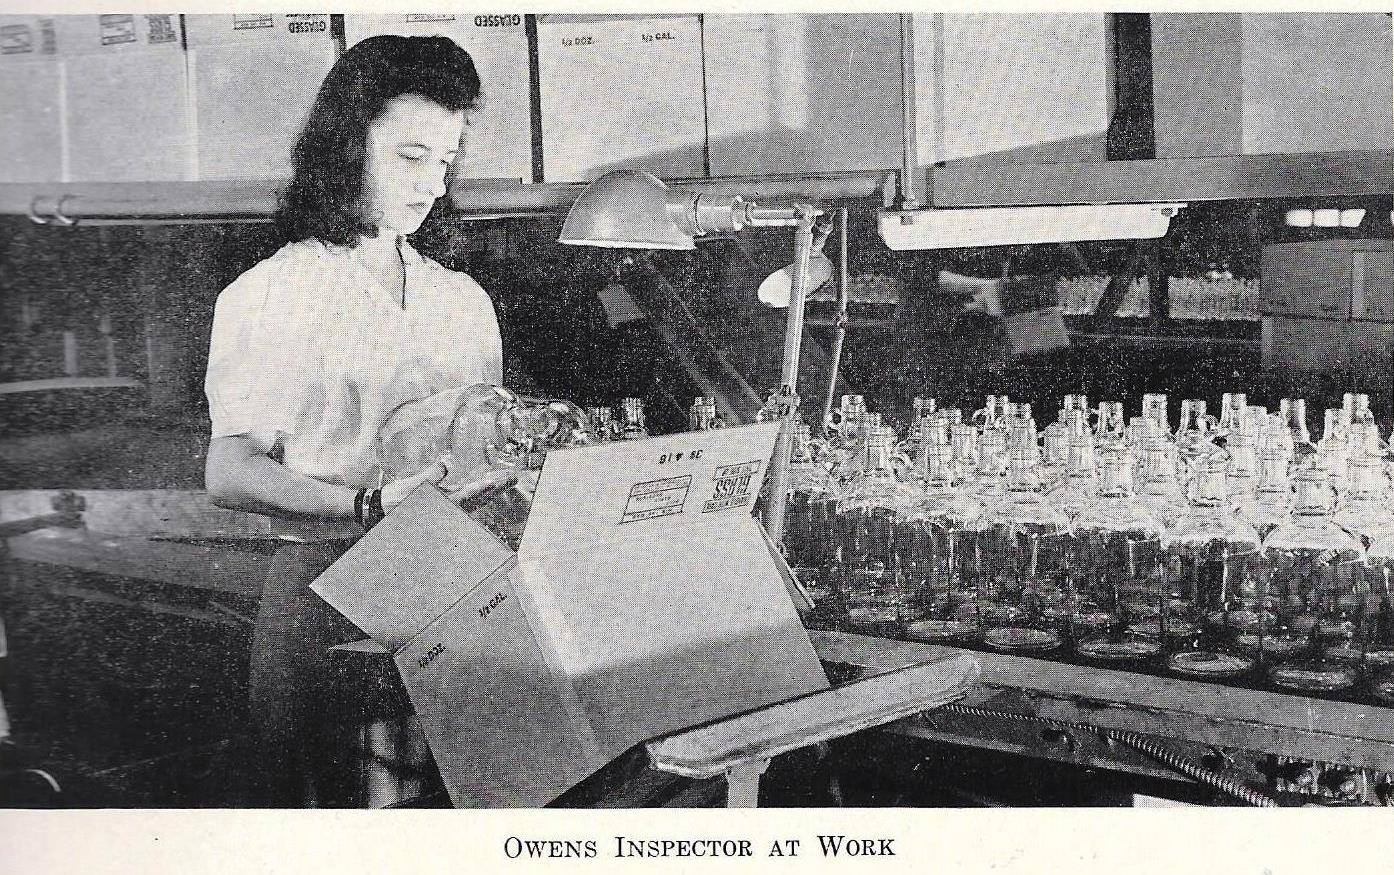 A worker inspects the bottles